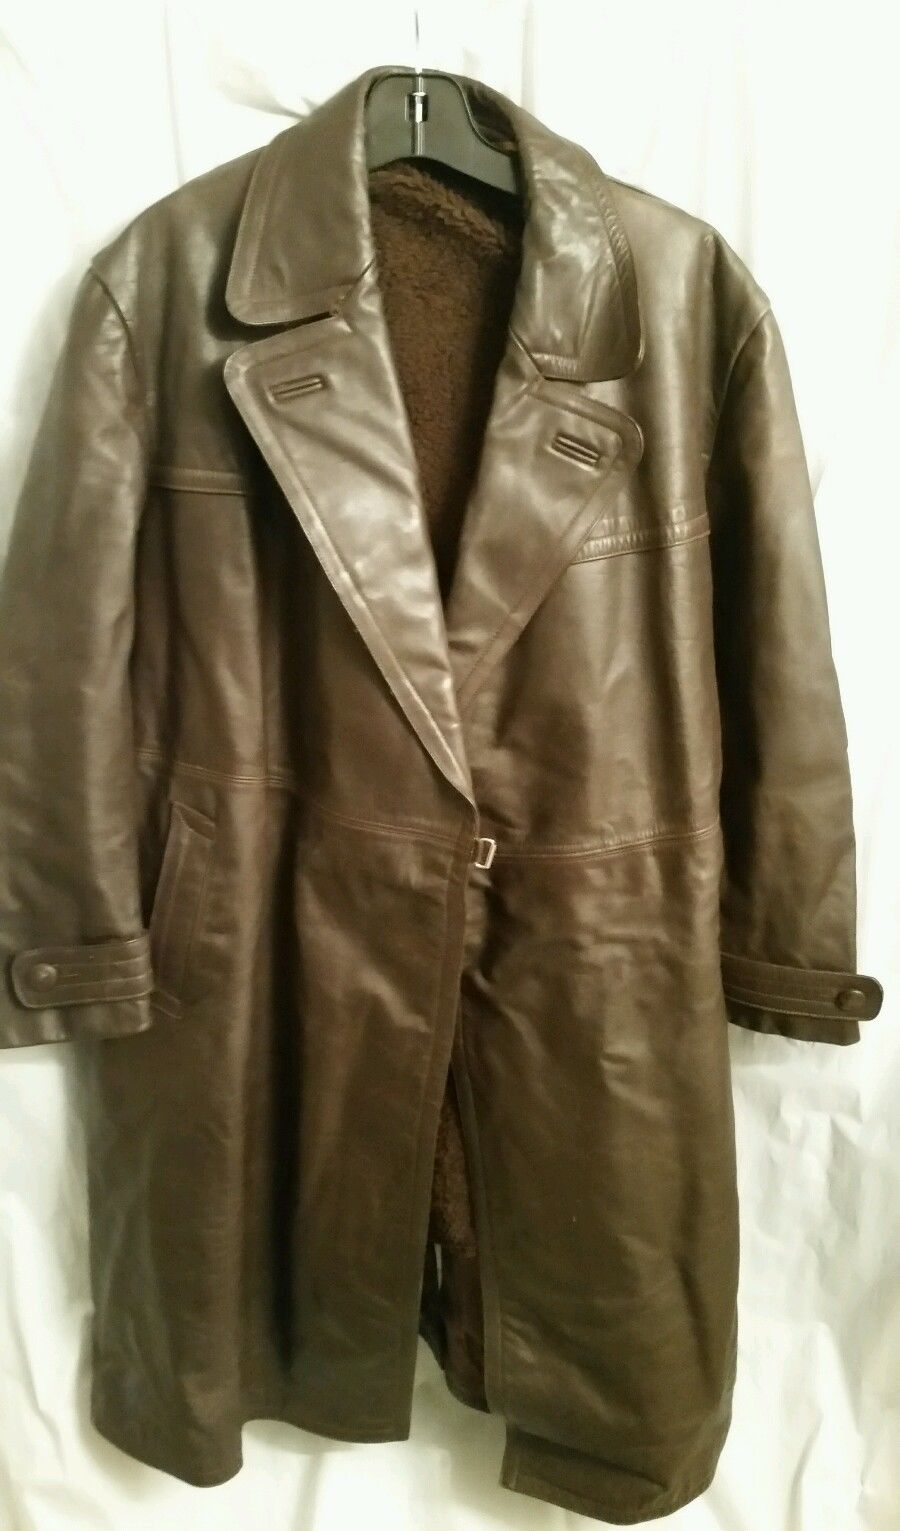 1950's German (probably Teichert) brown leather trench coat | The